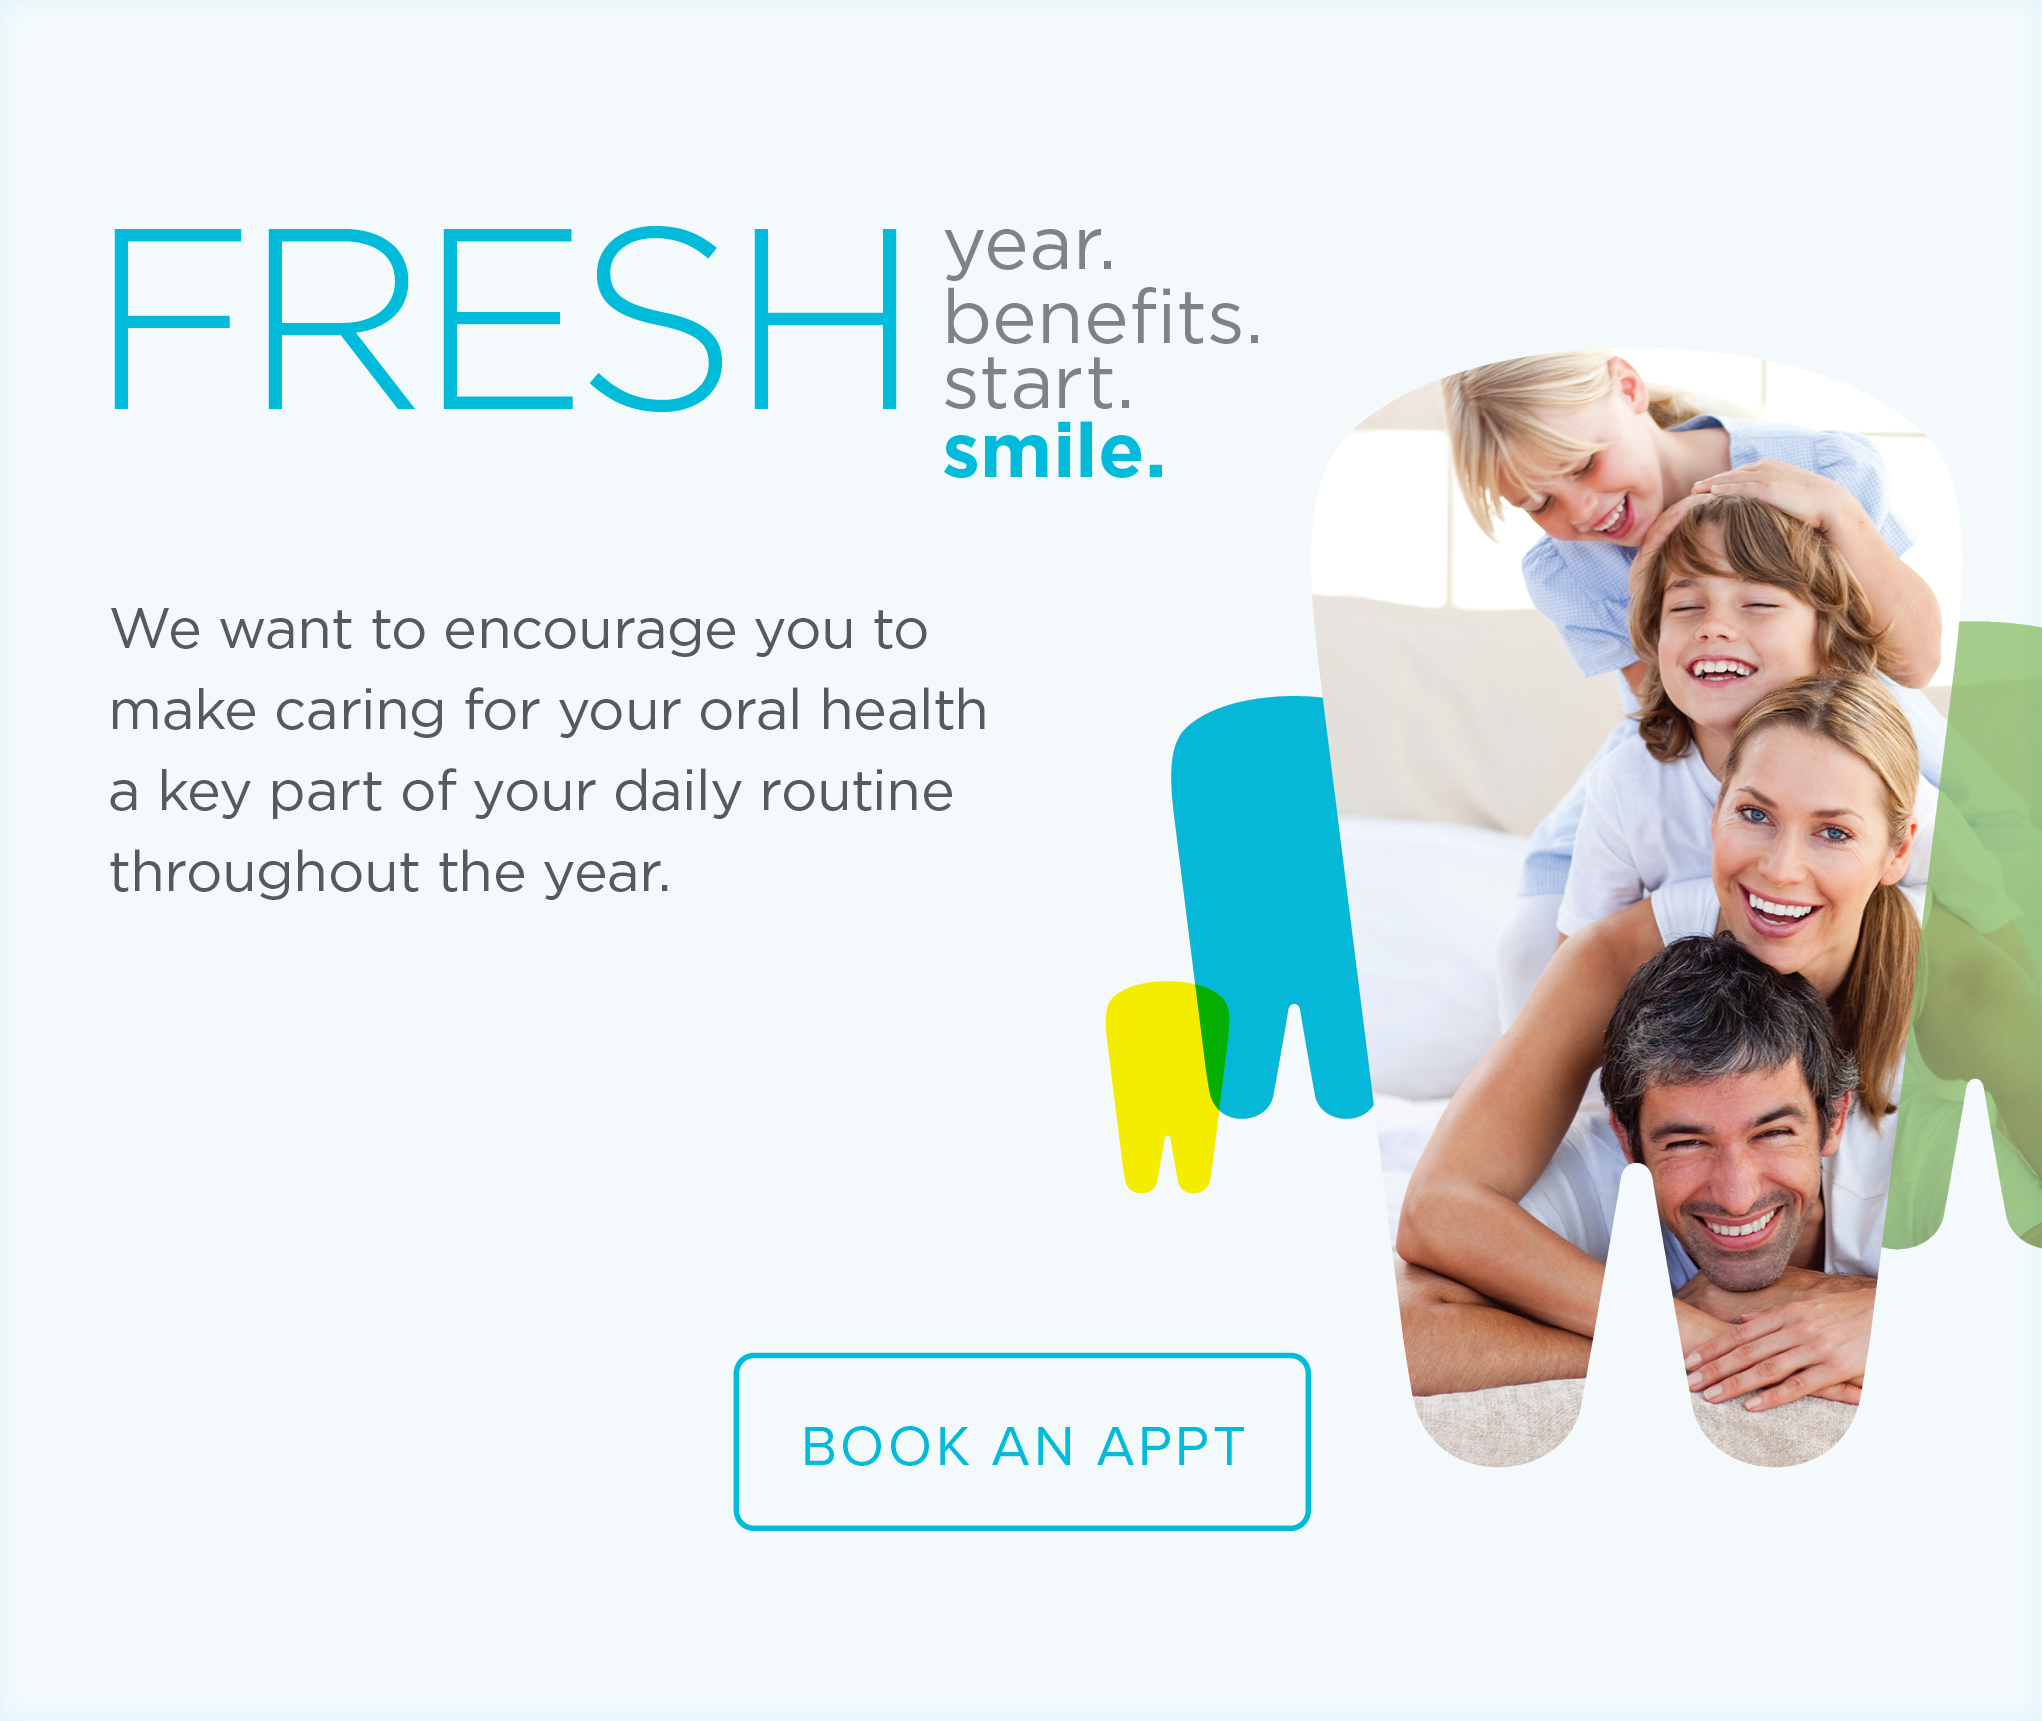 Cottonwood Modern Dentistry - Make the Most of Your Benefits